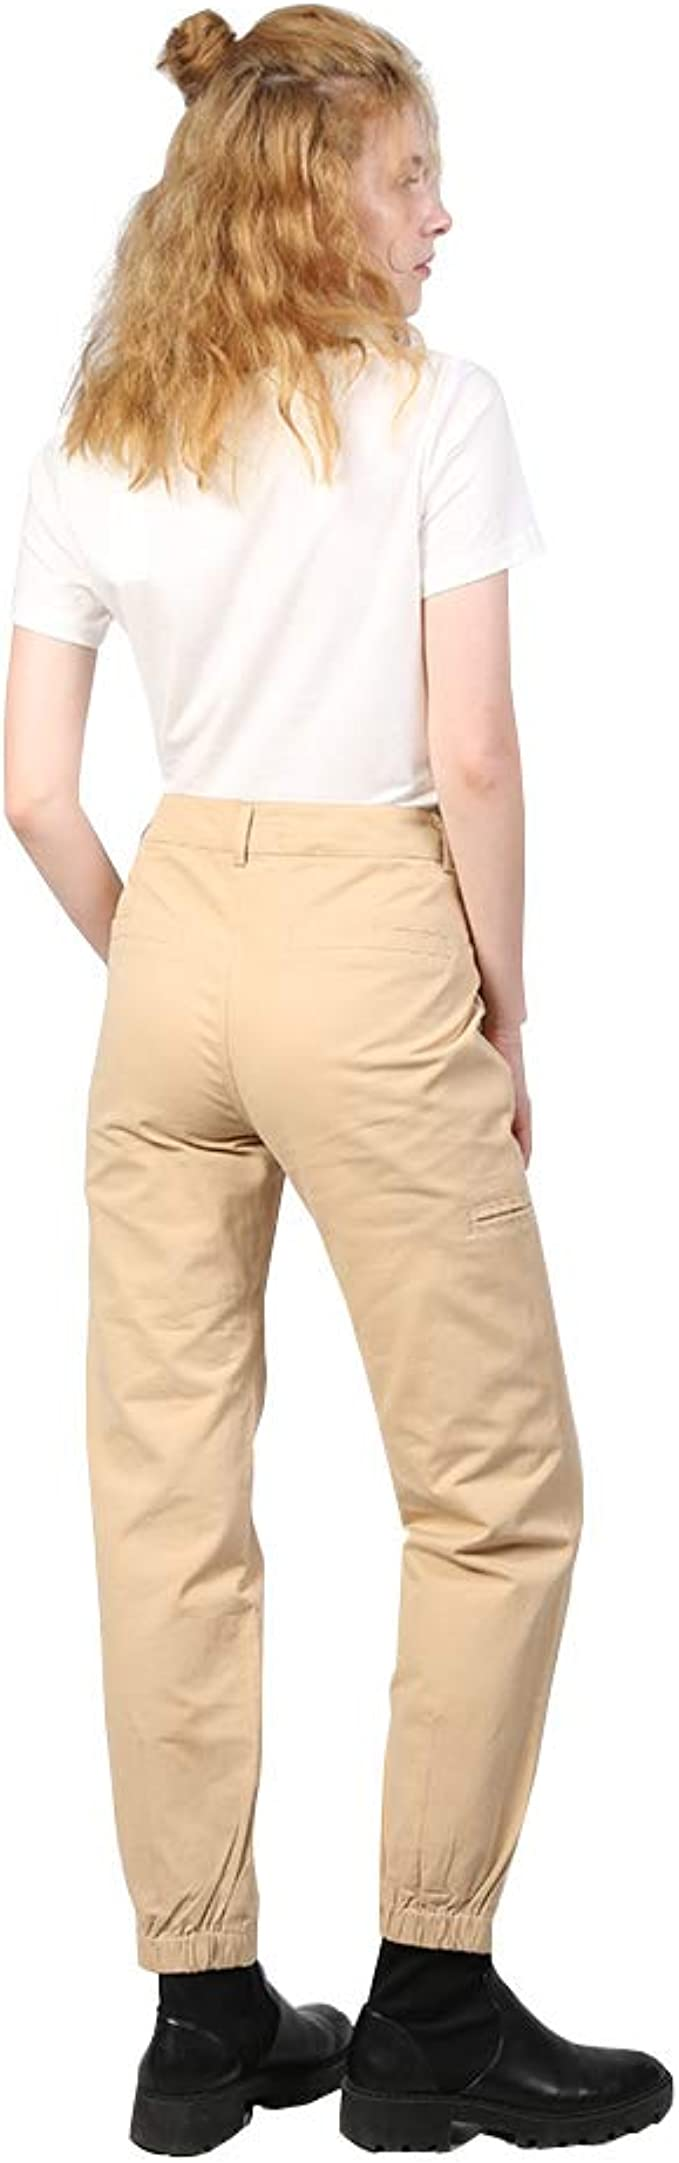 MEXUER Womens Khaki Cargo Pants Casual Outdoor Jogger Trousers Workout Pants with Pockets